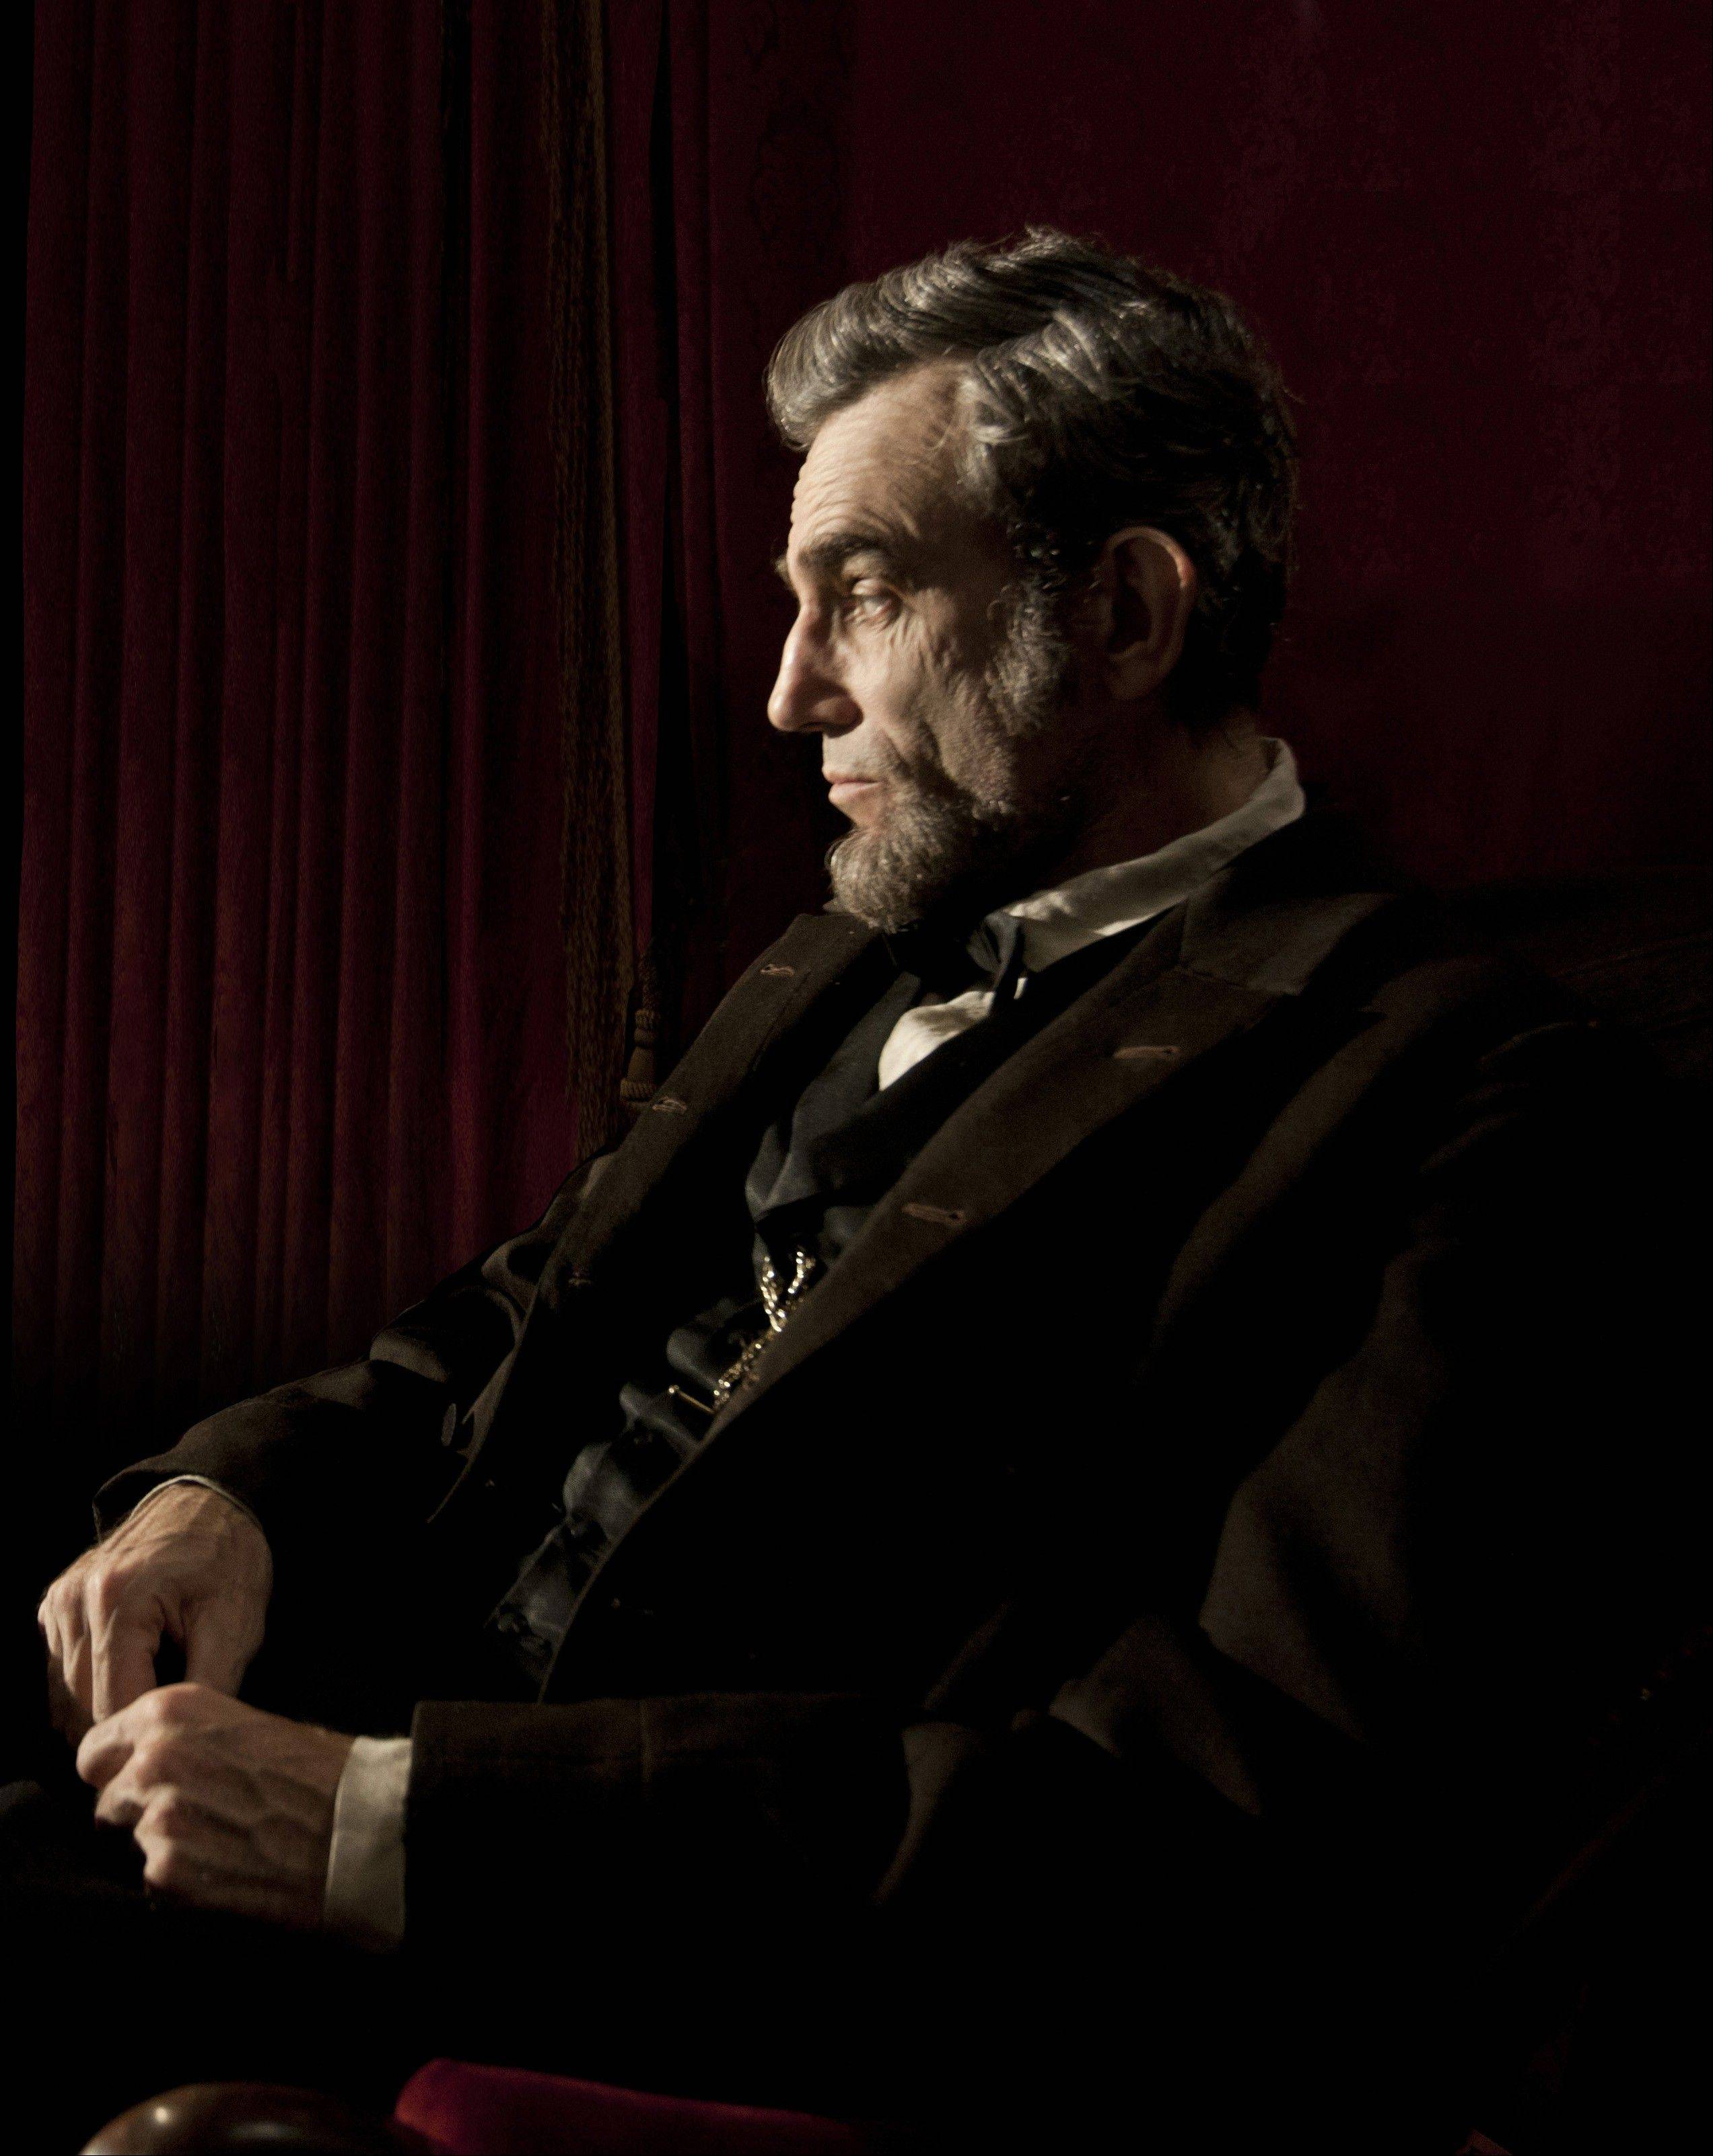 Daniel Day-Lewis was chosen best actor by The National Society of Film Critics for portraying Abraham Lincoln in the film �Lincoln.�